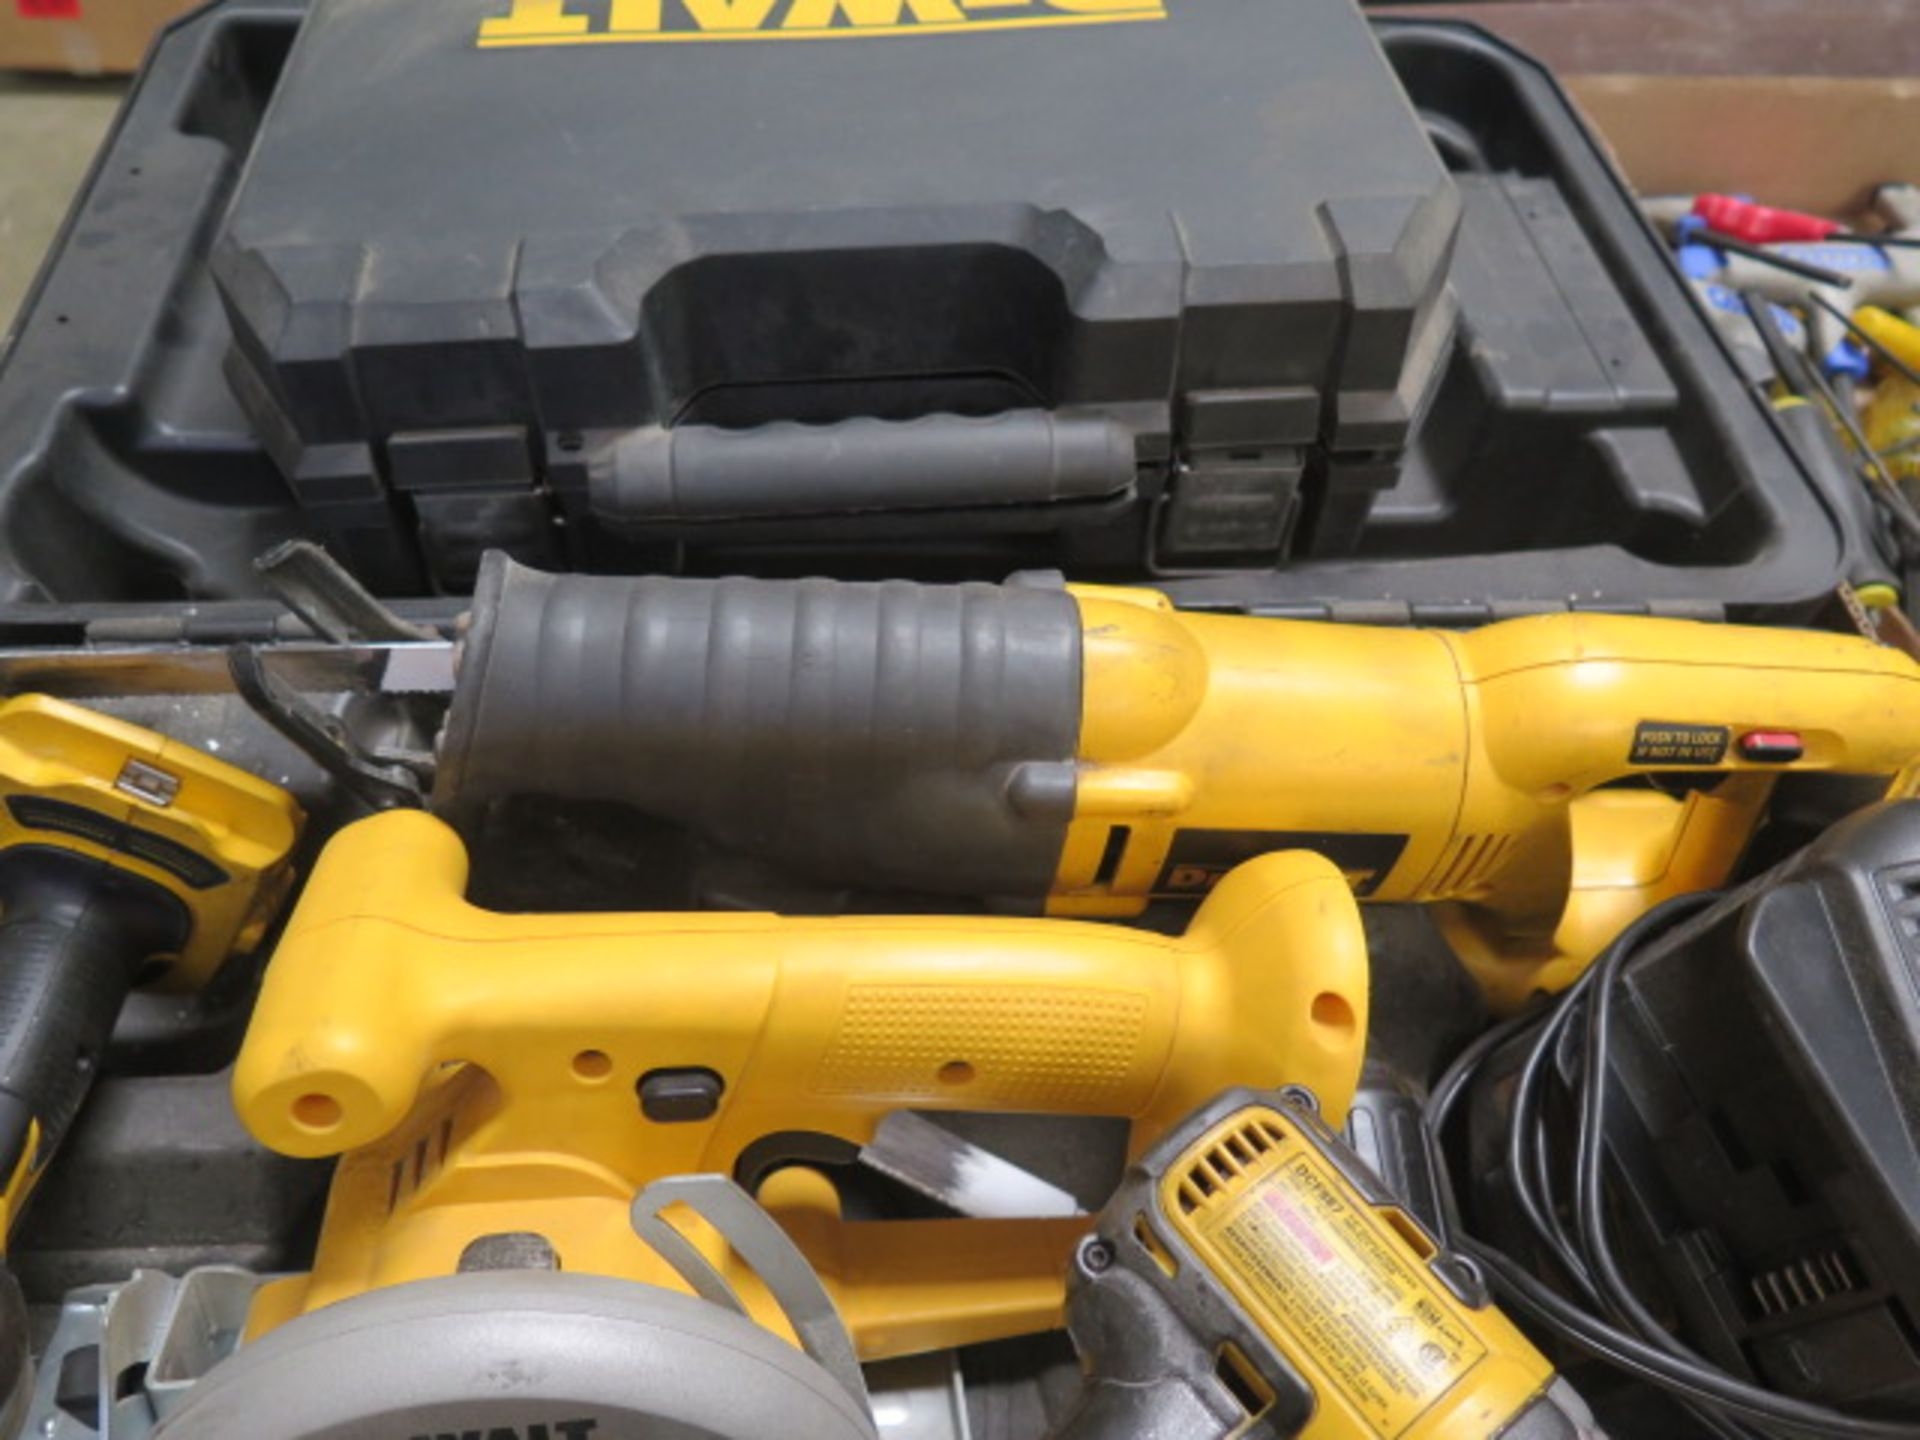 DeWalt Cordless Tools w/ Charger (SOLD AS-IS - NO WARRANTY) - Image 4 of 9